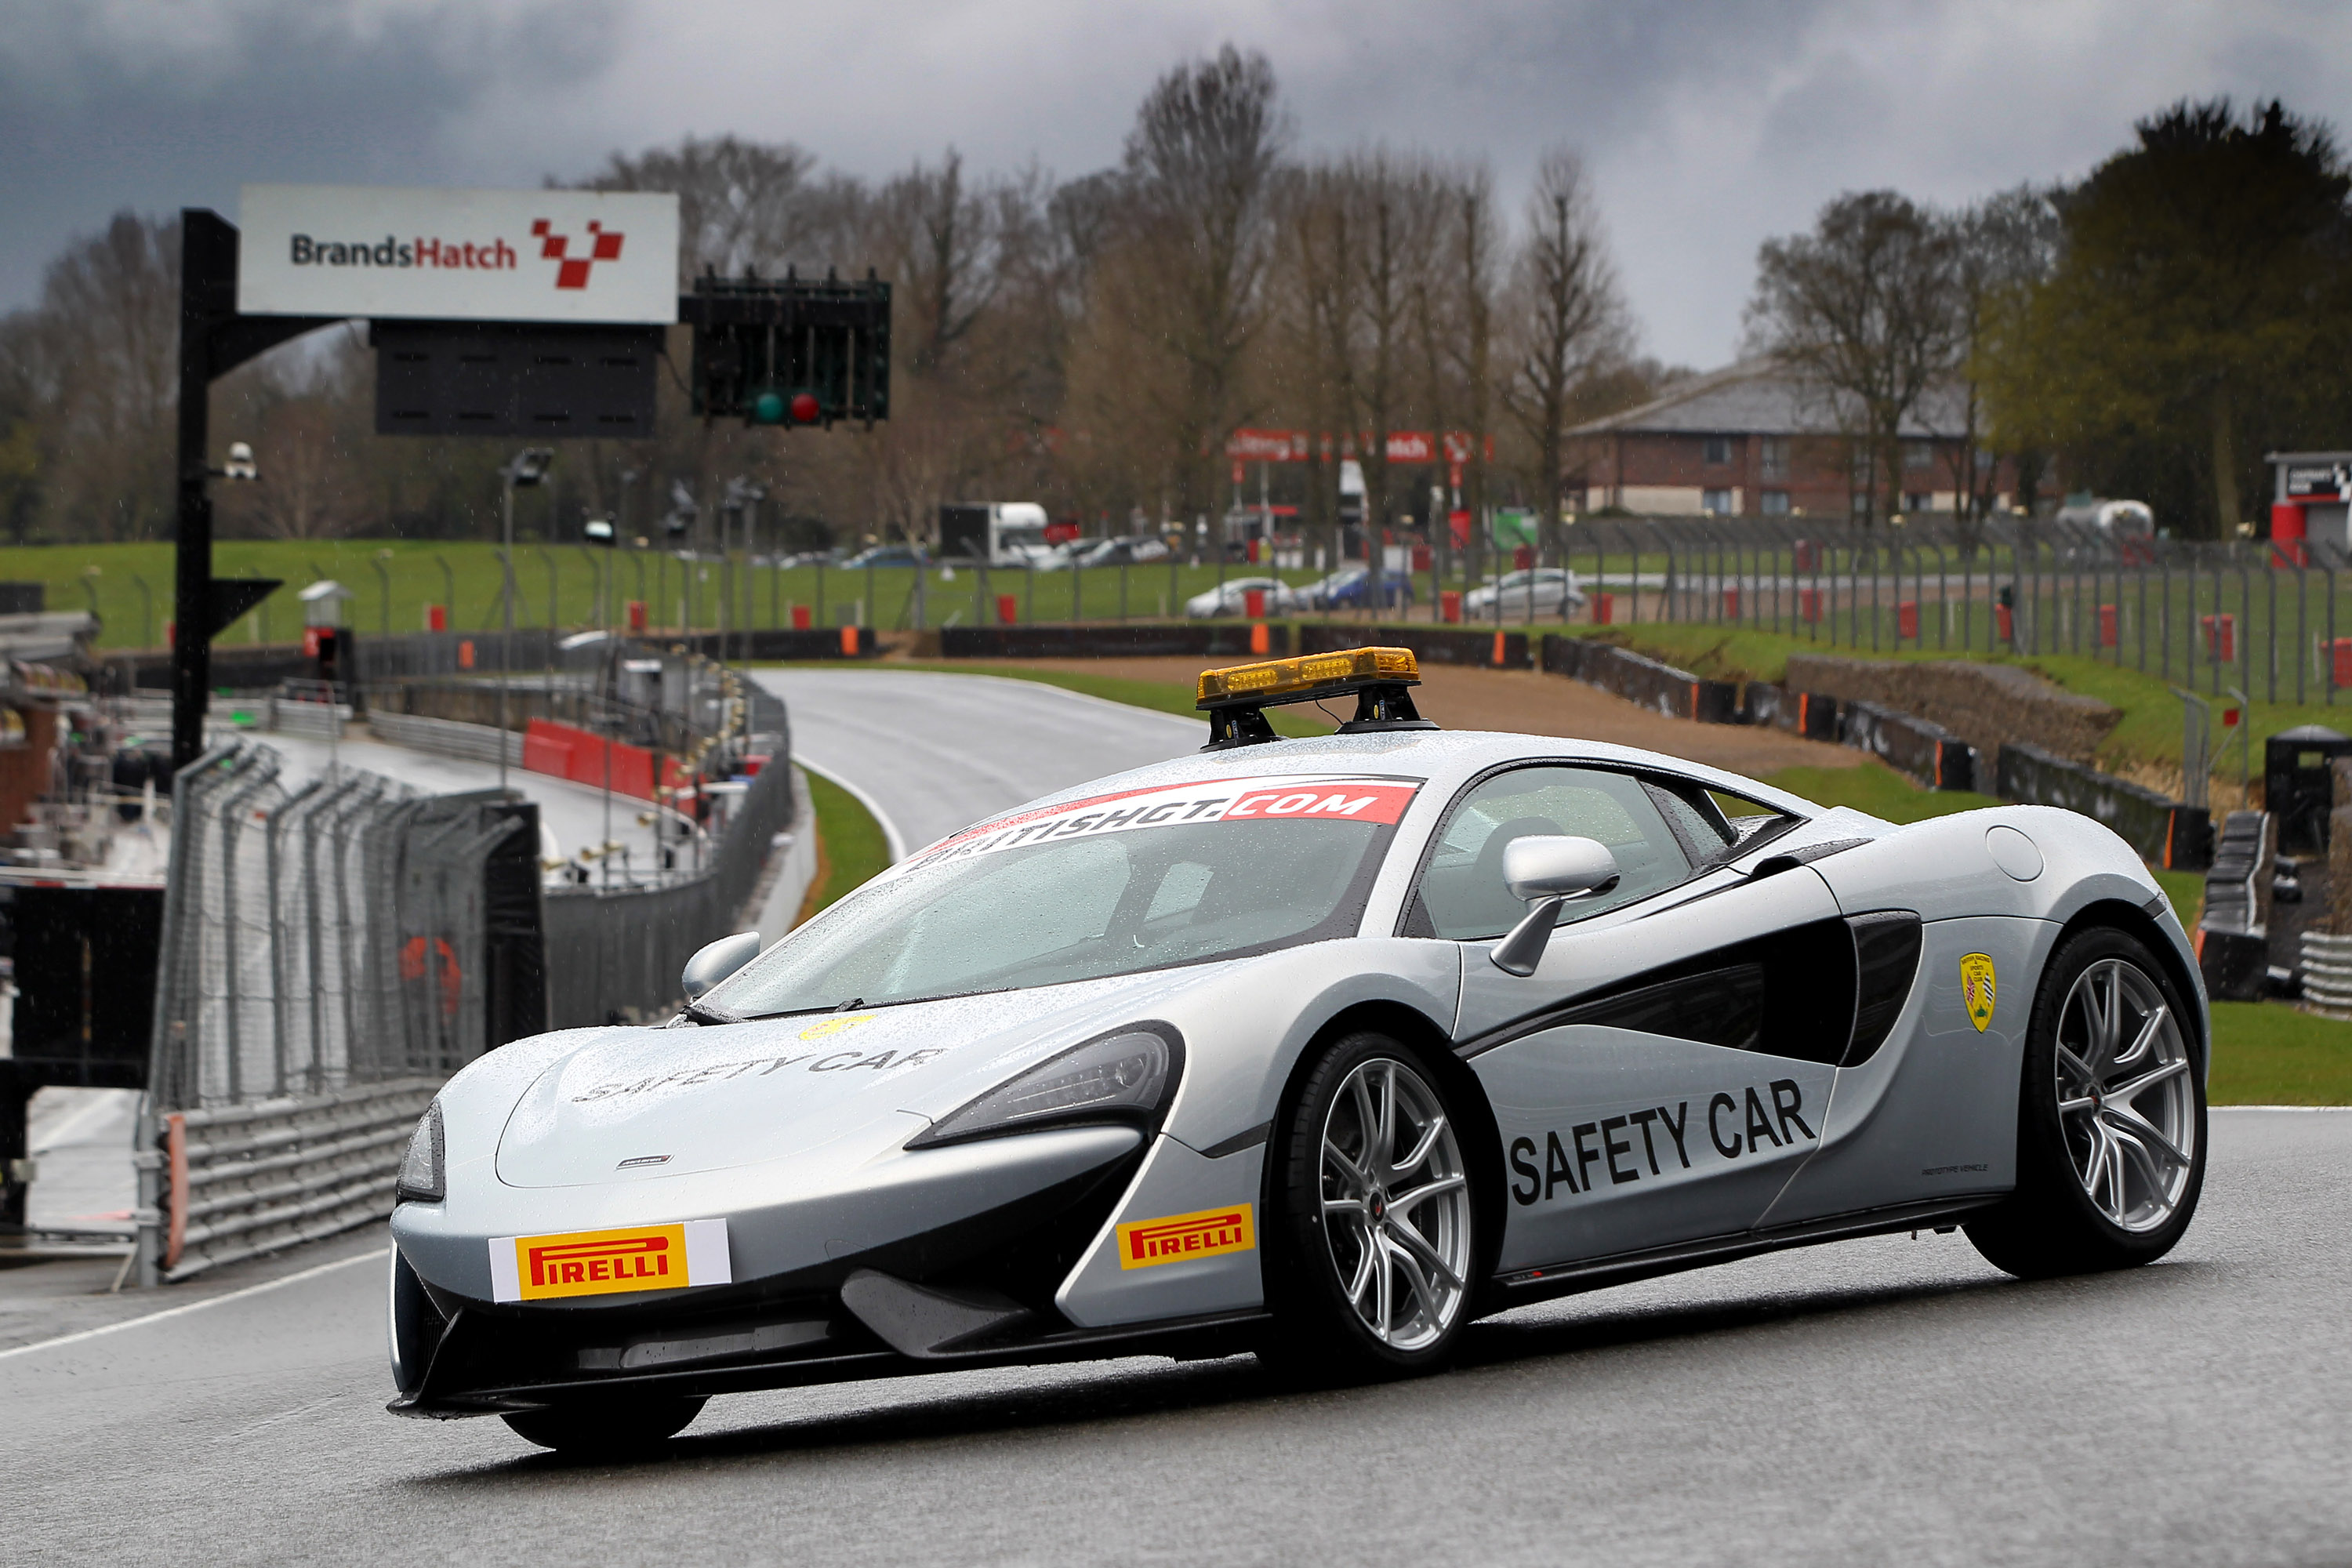 https://www.automobilesreview.com/gallery/2016-mclaren-570s-coupe-safety-car/2016-mclaren-570s-coupe-safety-car-04.jpg